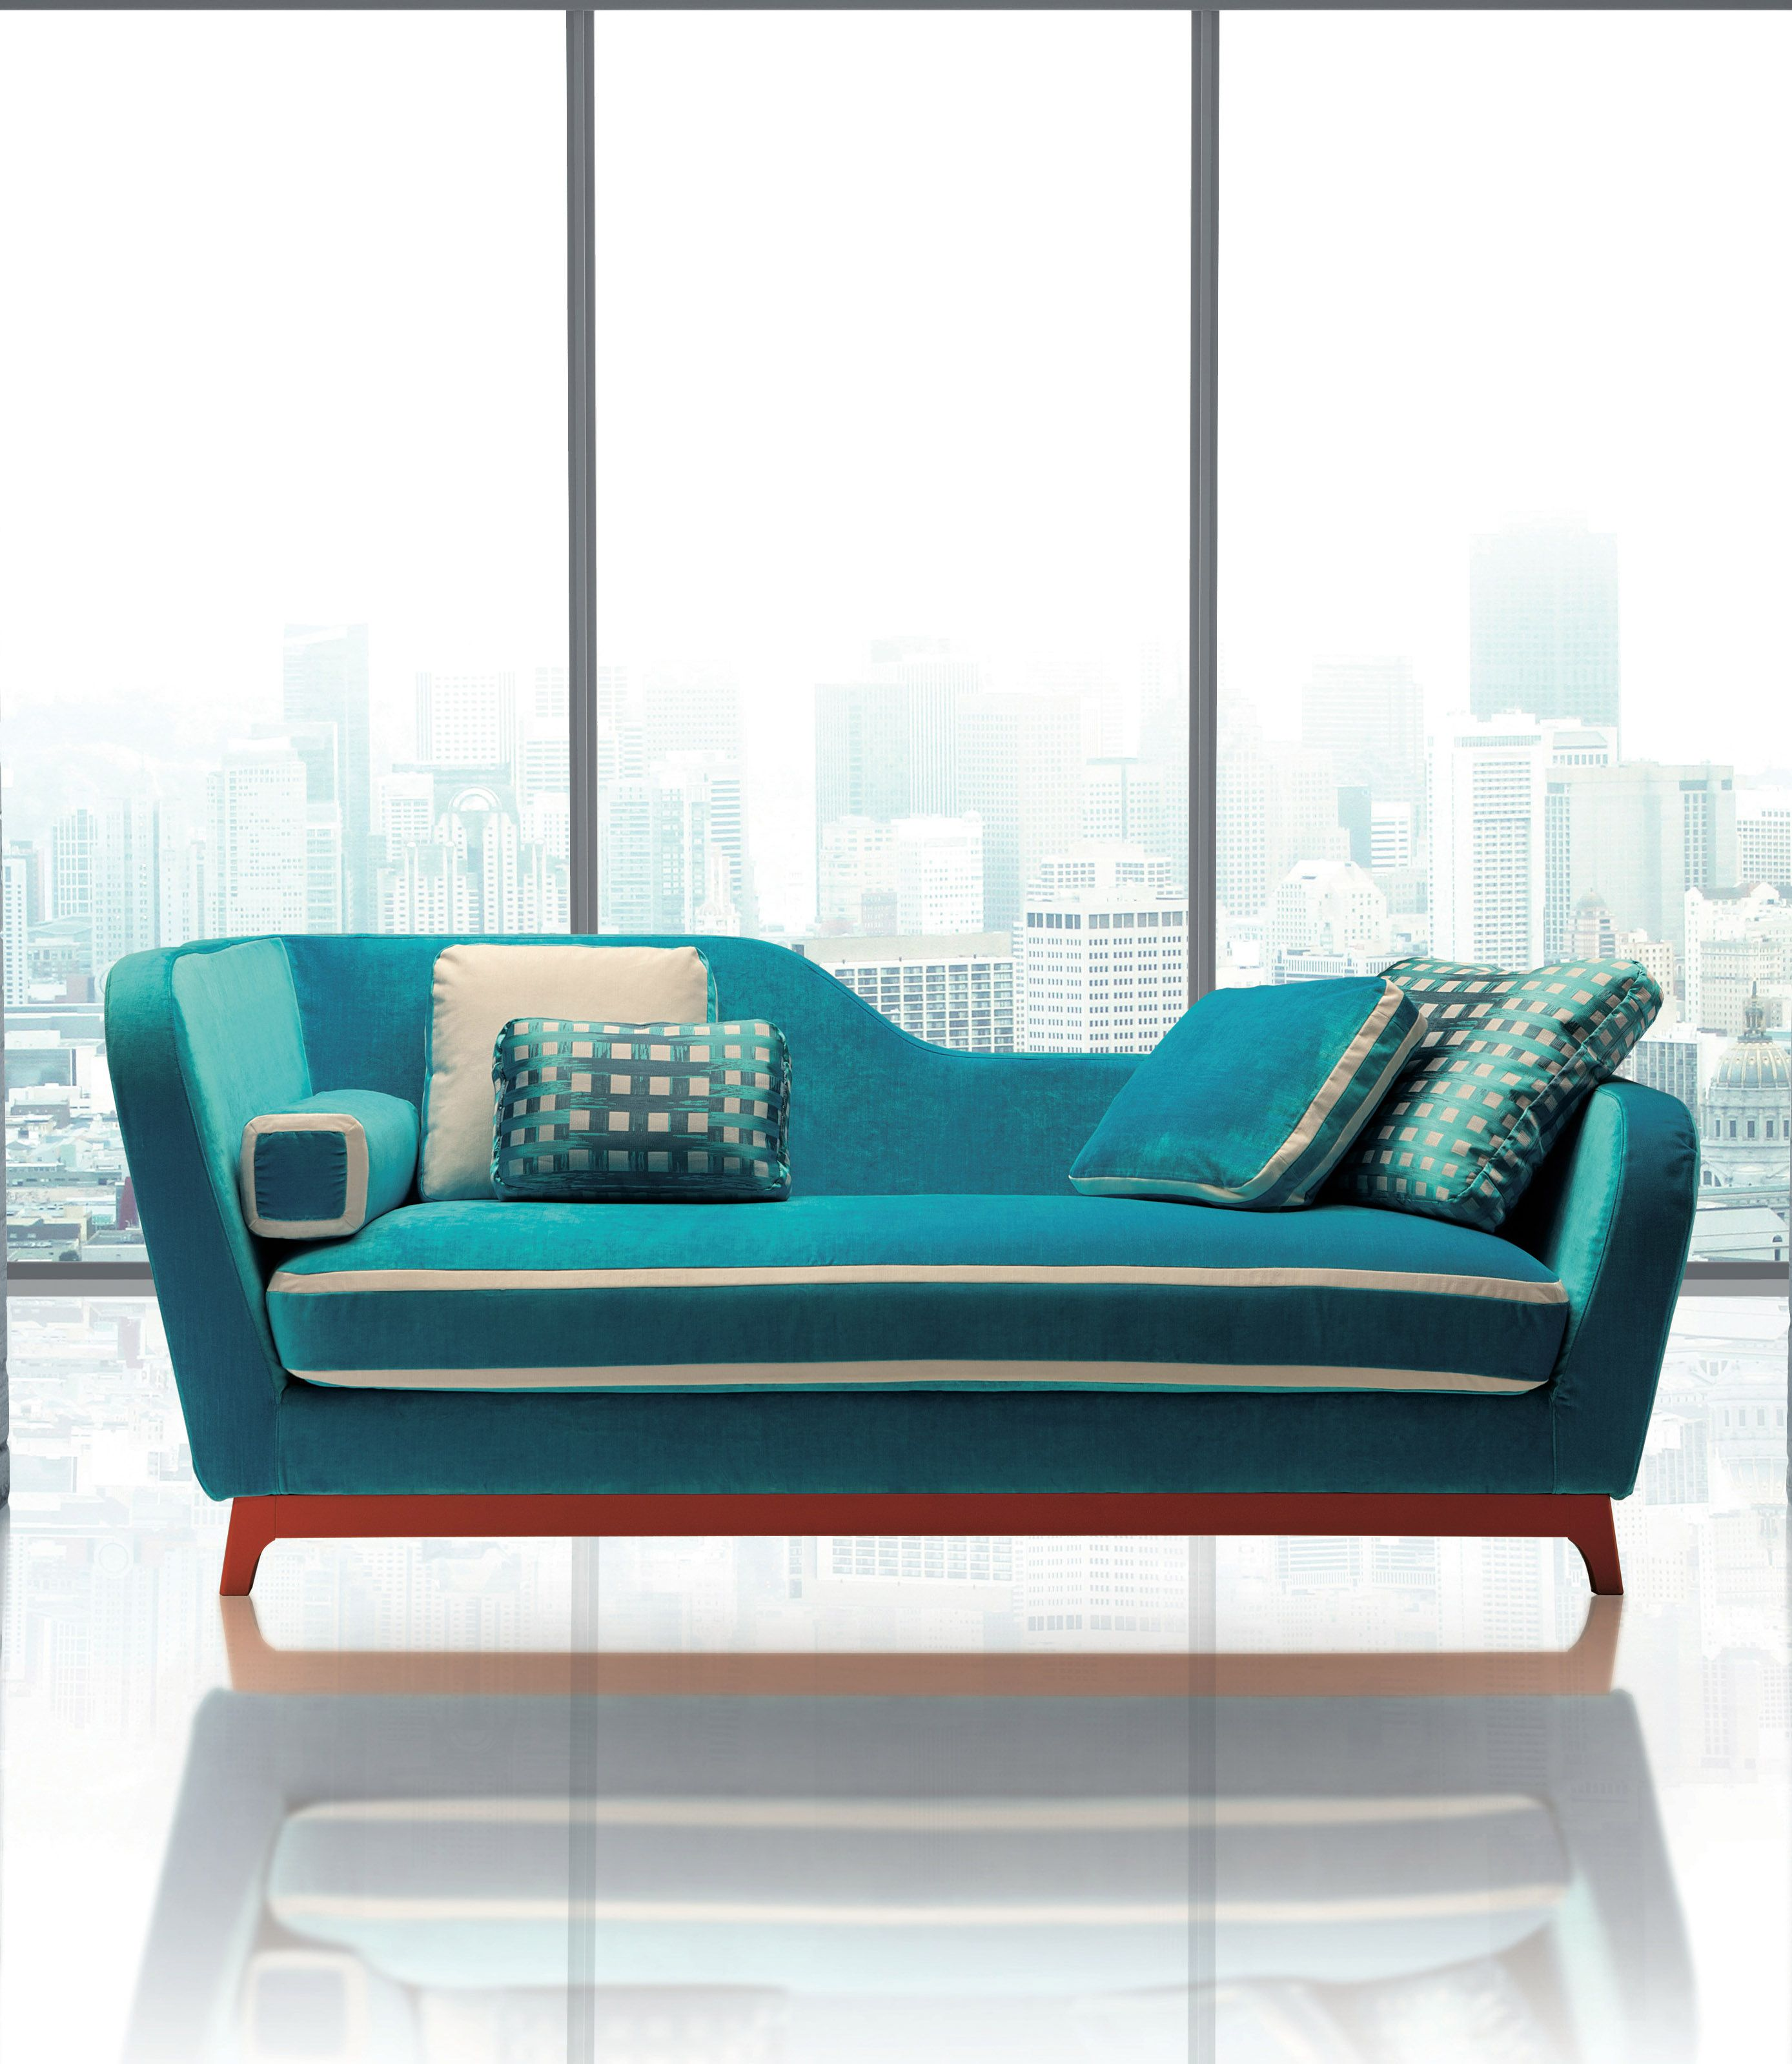 Sofa And Sofabed Jeremie Design Eric Berthes In The Trendy Version With Fabric By Designers